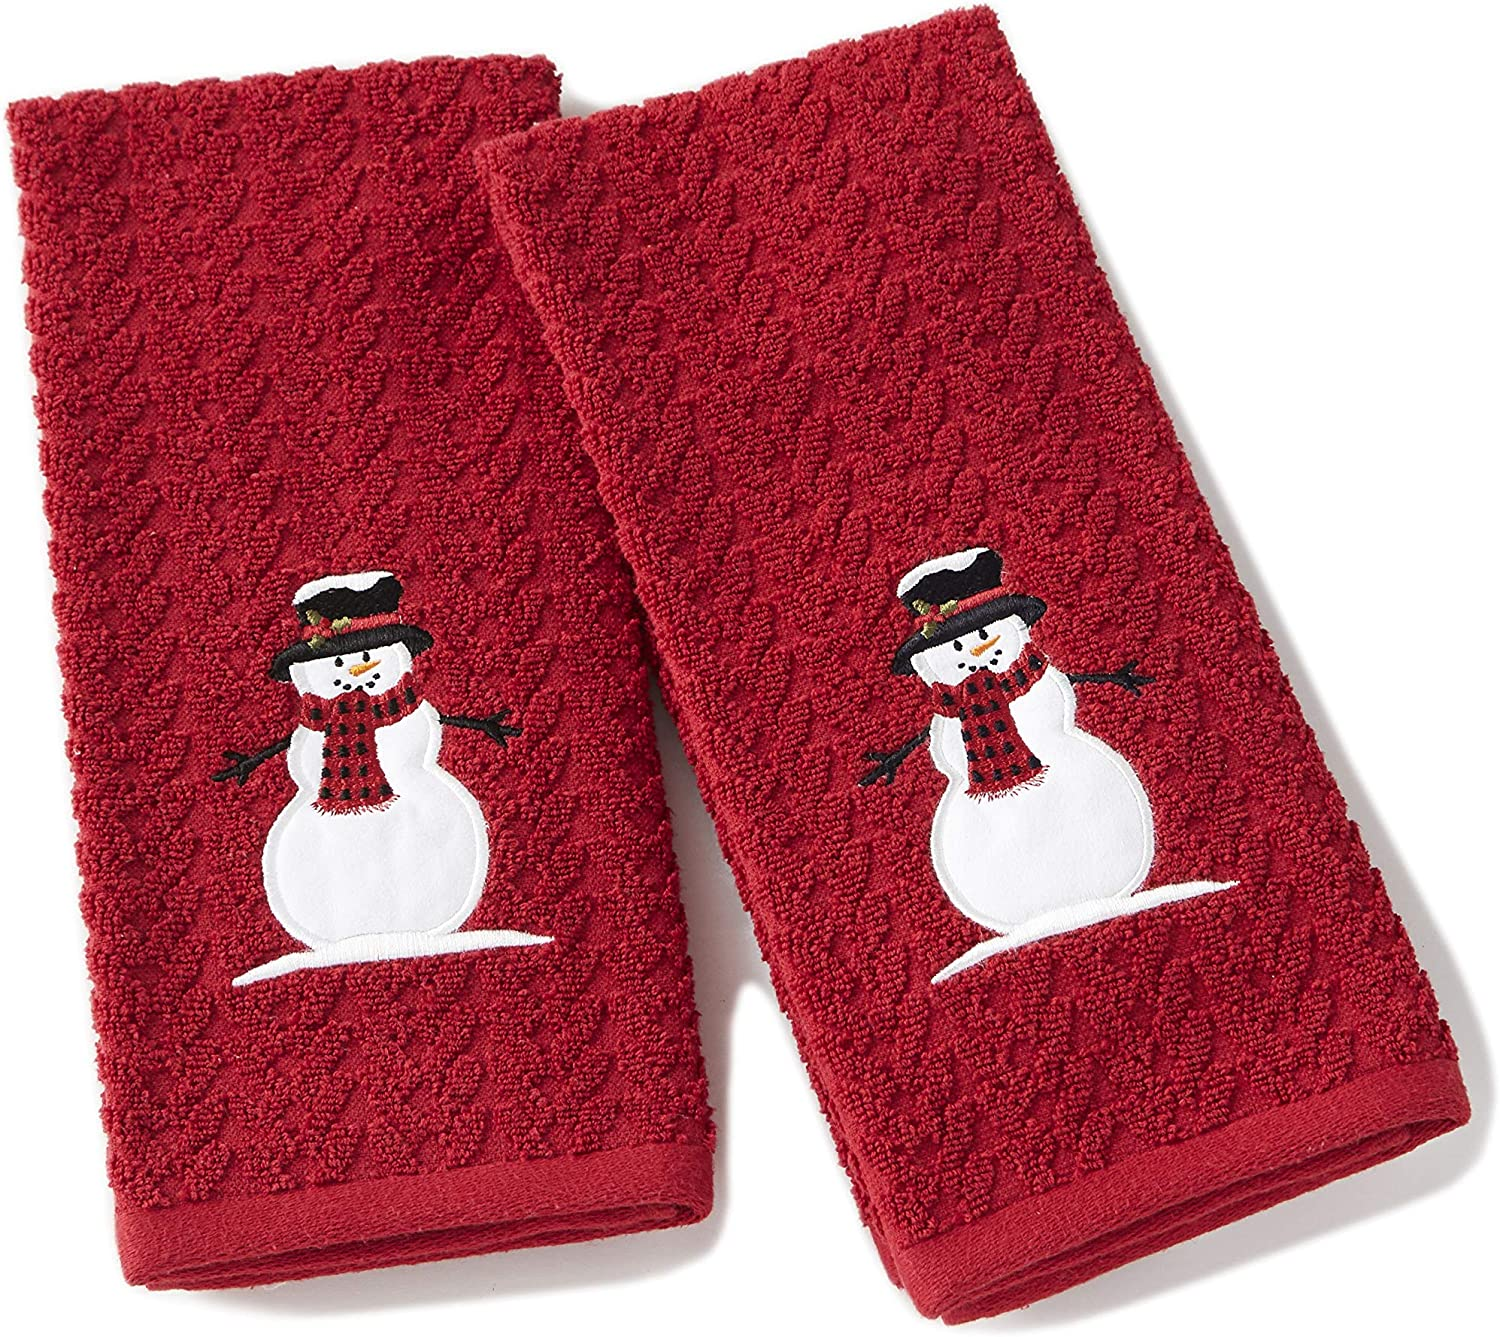 SKL Home by Saturday Knight Ltd. Hand Towel Set